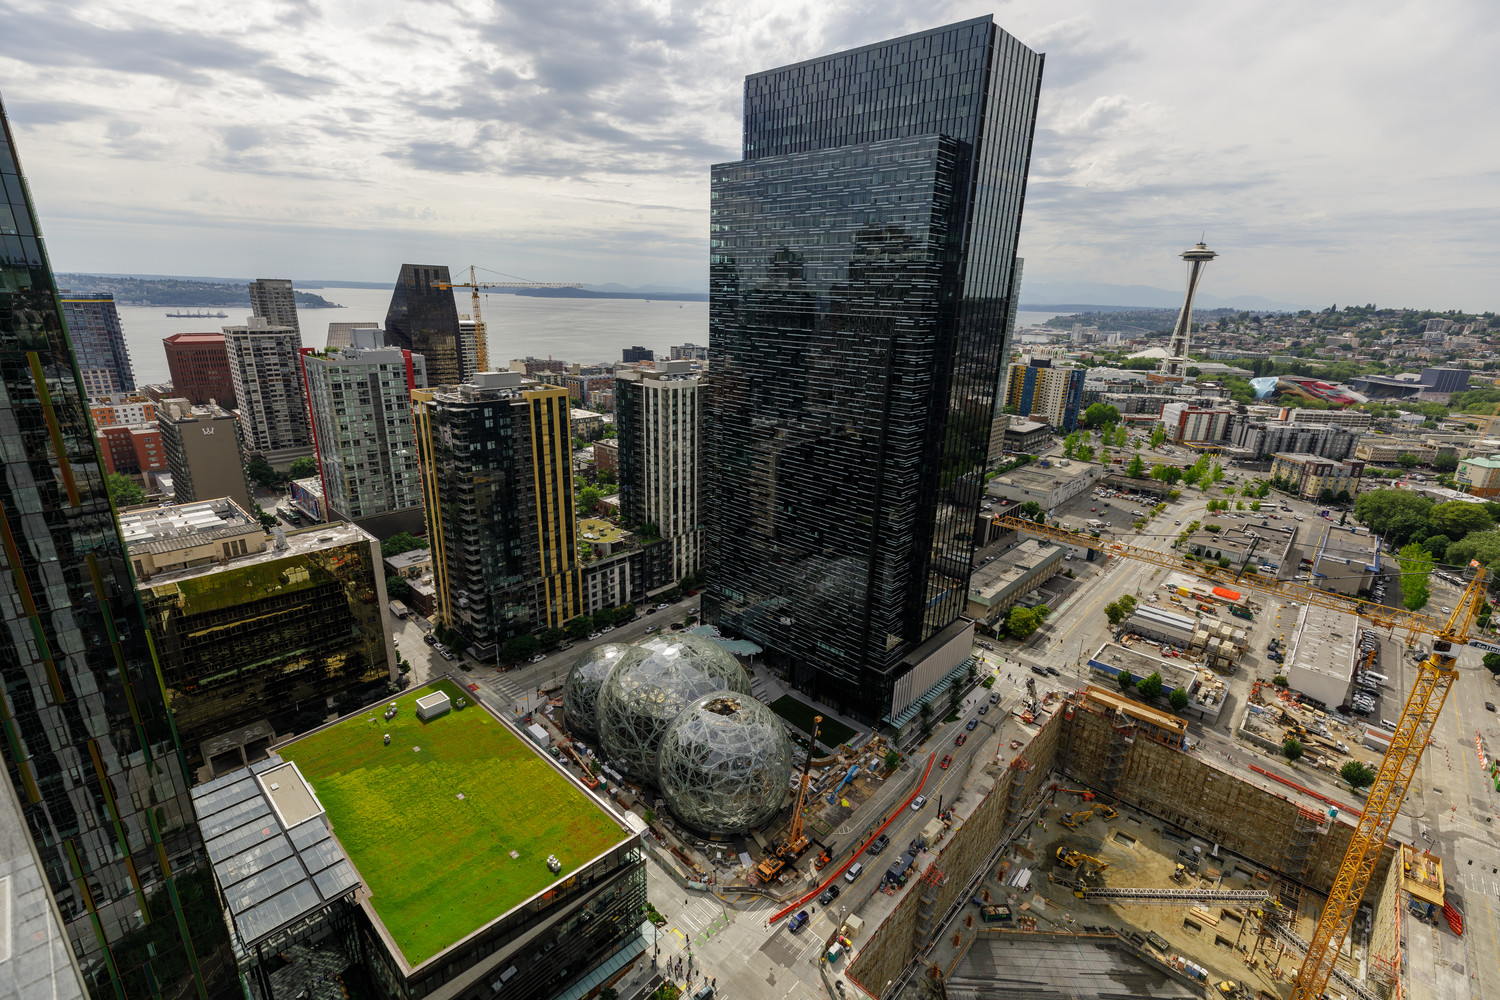 Amazon's headquarter campus, pictured here in downtown Seattle, Wash. The online retail giant may be considering building their second headquarters in Leander or Cedar Park.